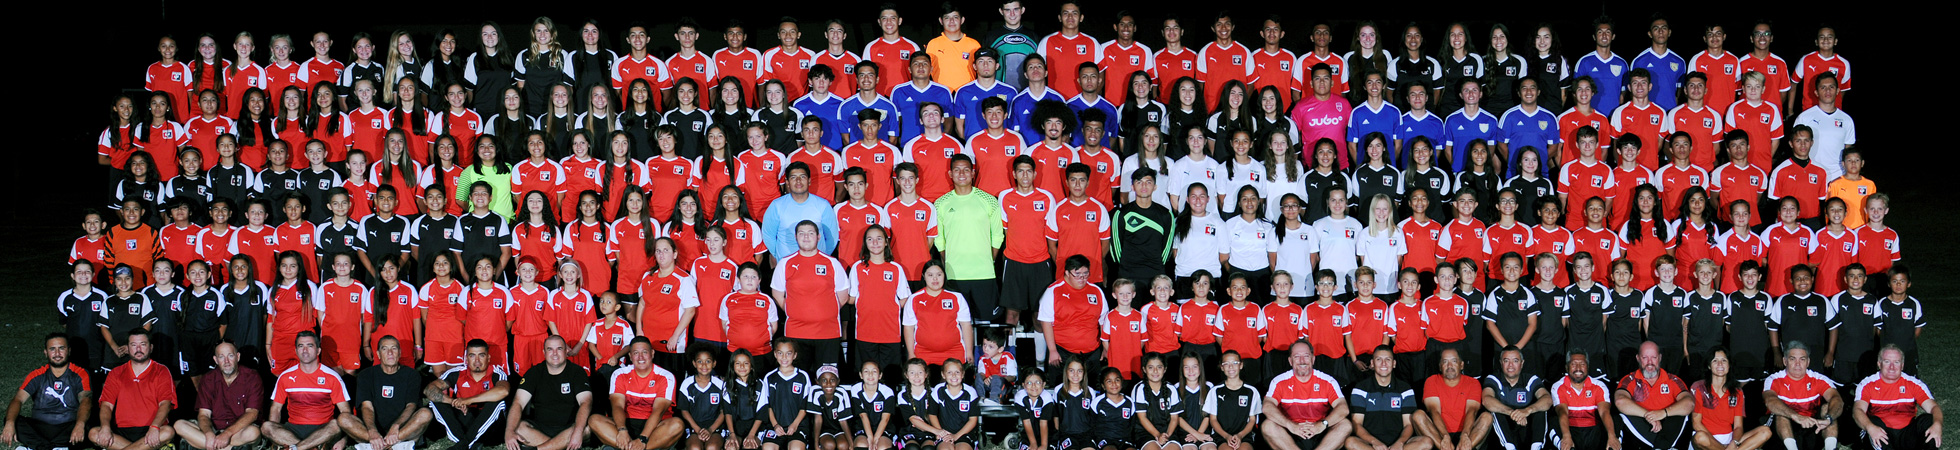 Desert United Soccer League Gallery Image 3